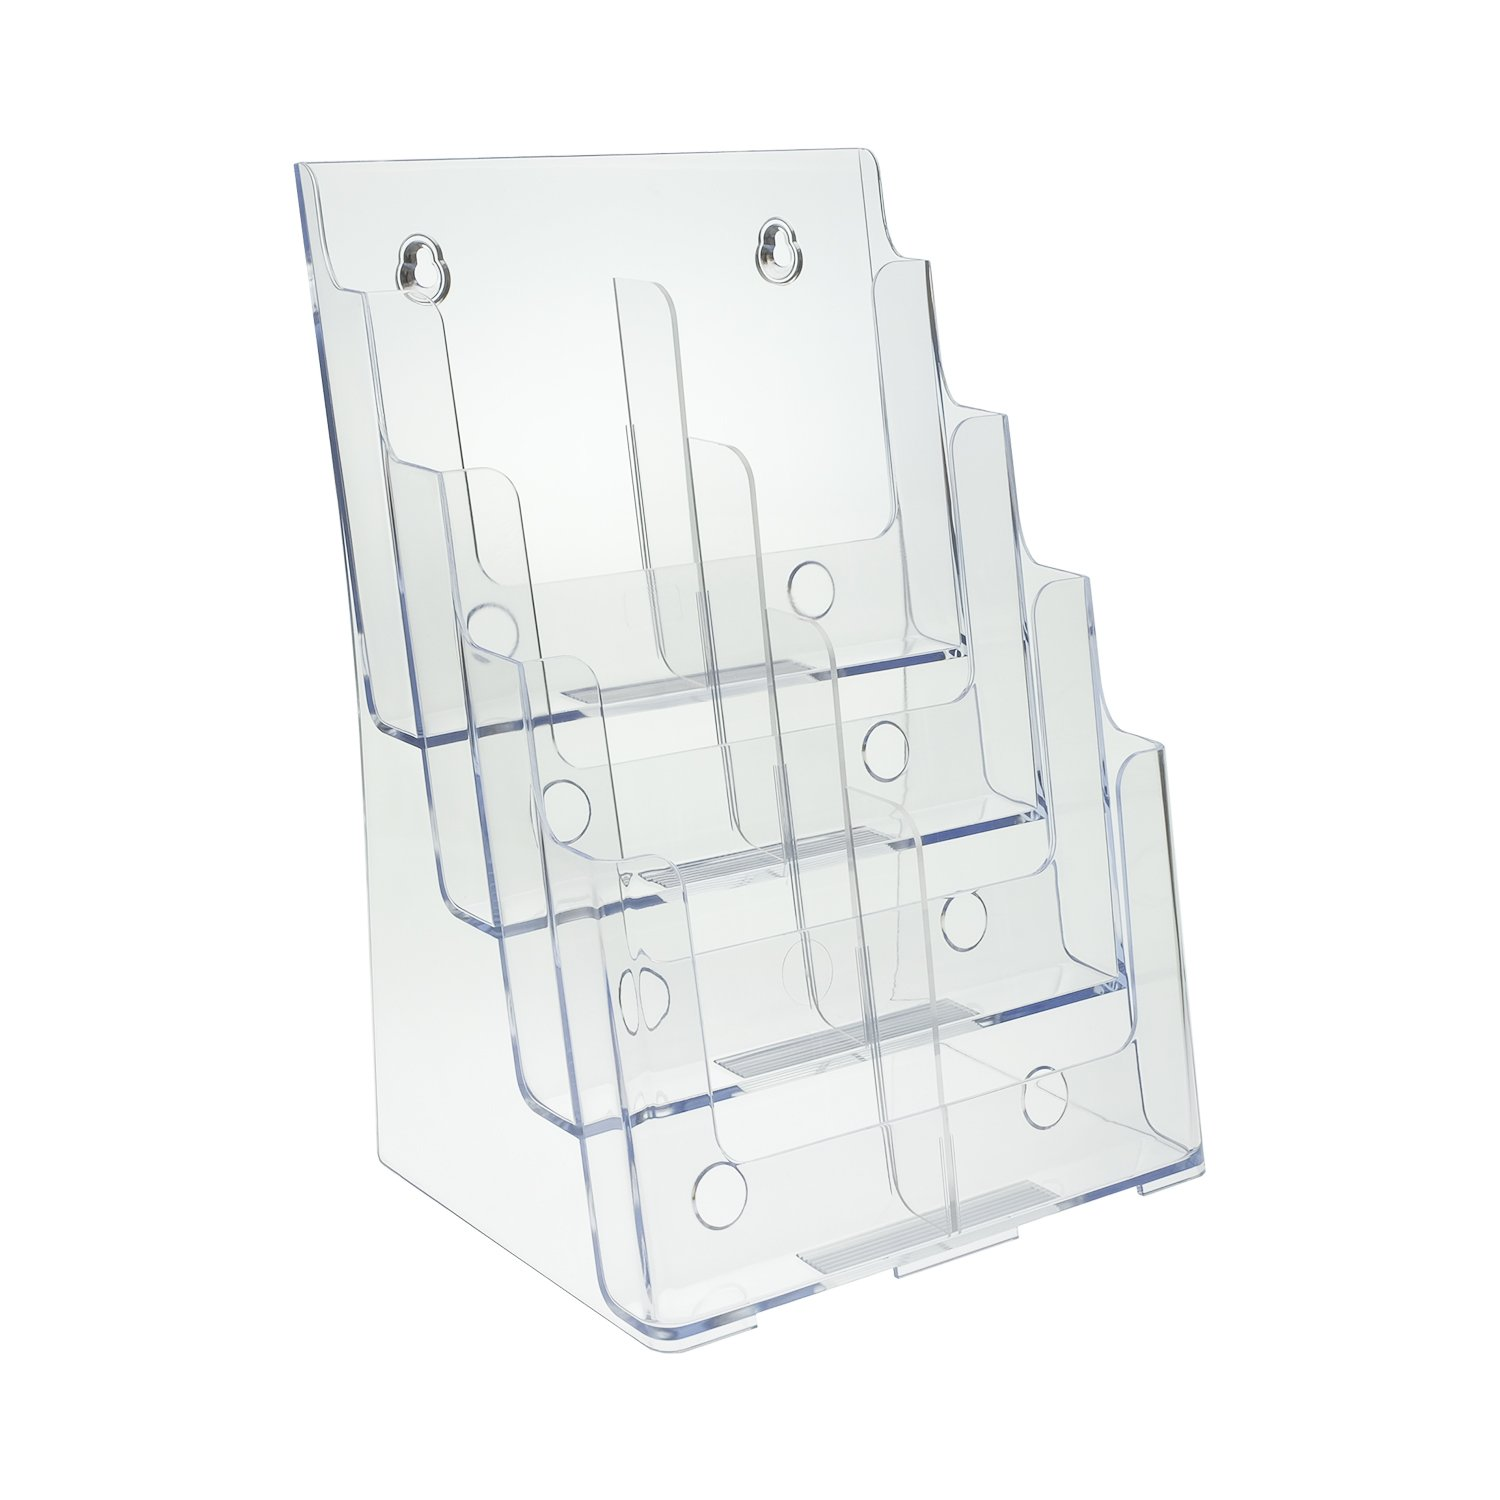 SourceOne Premium 4-Tier Magazine and Brochure Holder – Clear Acrylic Countertop Organizer